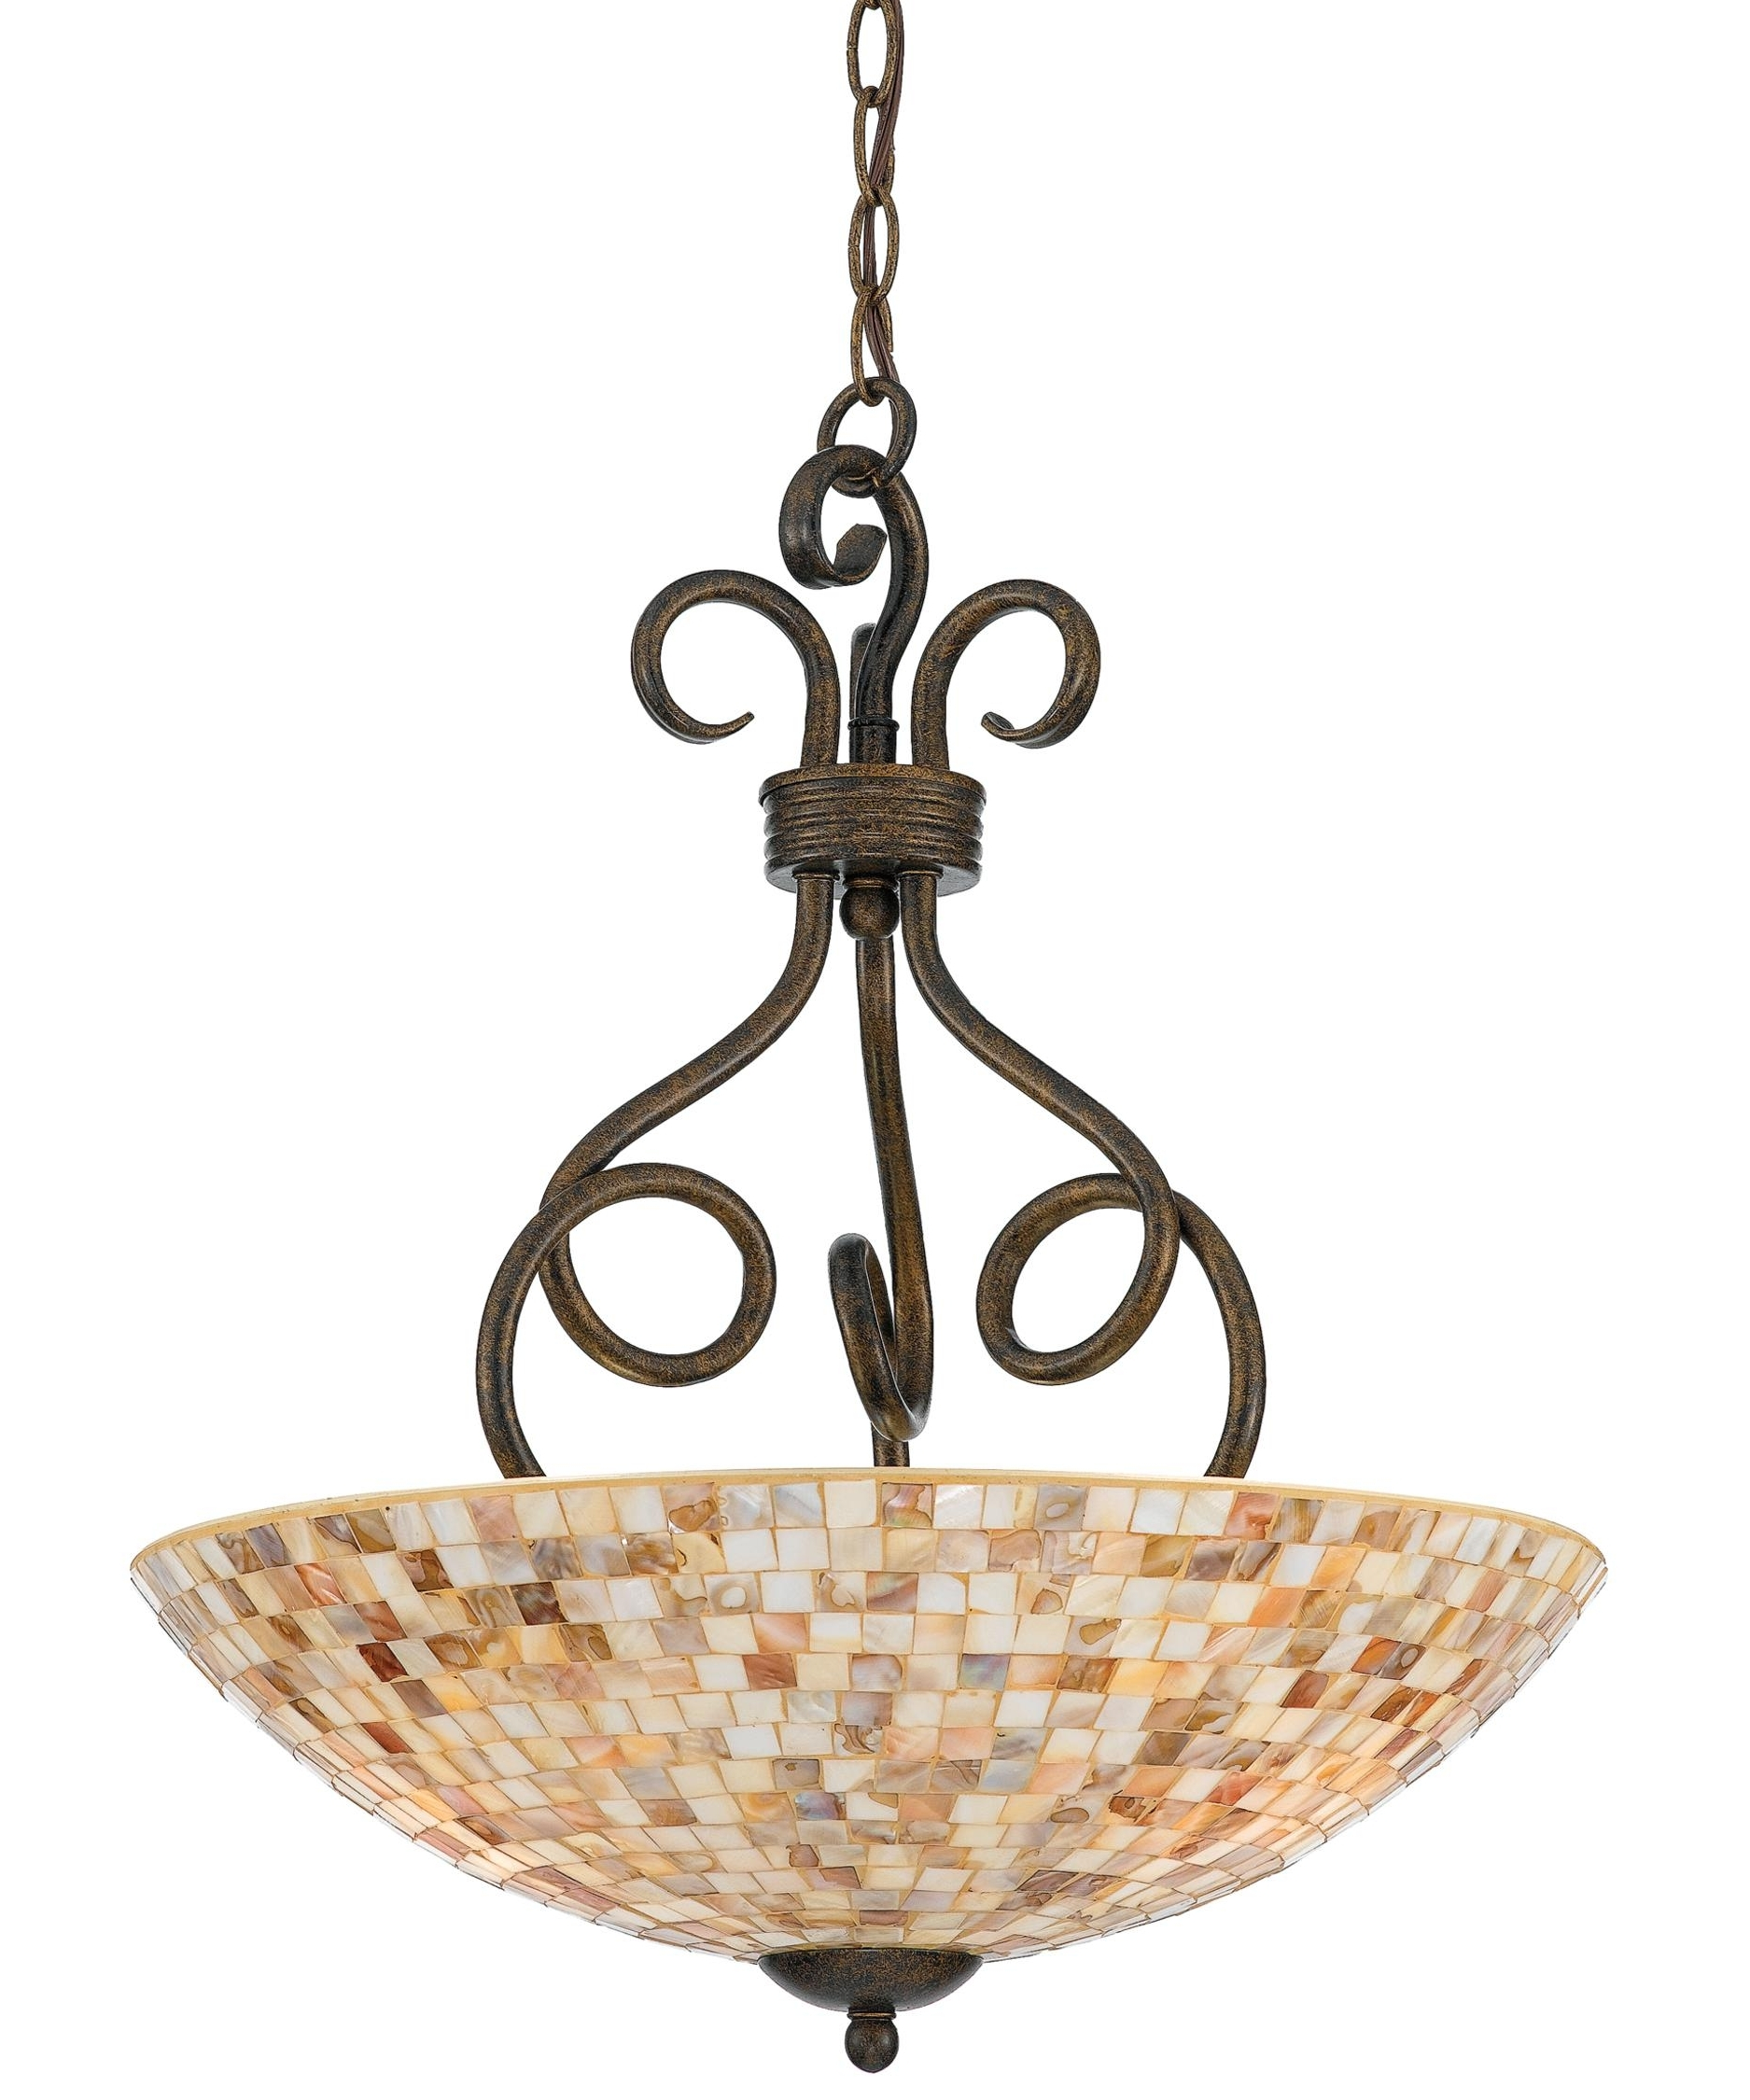 Light : Awesome Quoizel Monterey Mosaic Inch Large Pendant For Chic With Regard To Well Known Inverted Pendant Chandeliers (View 12 of 20)